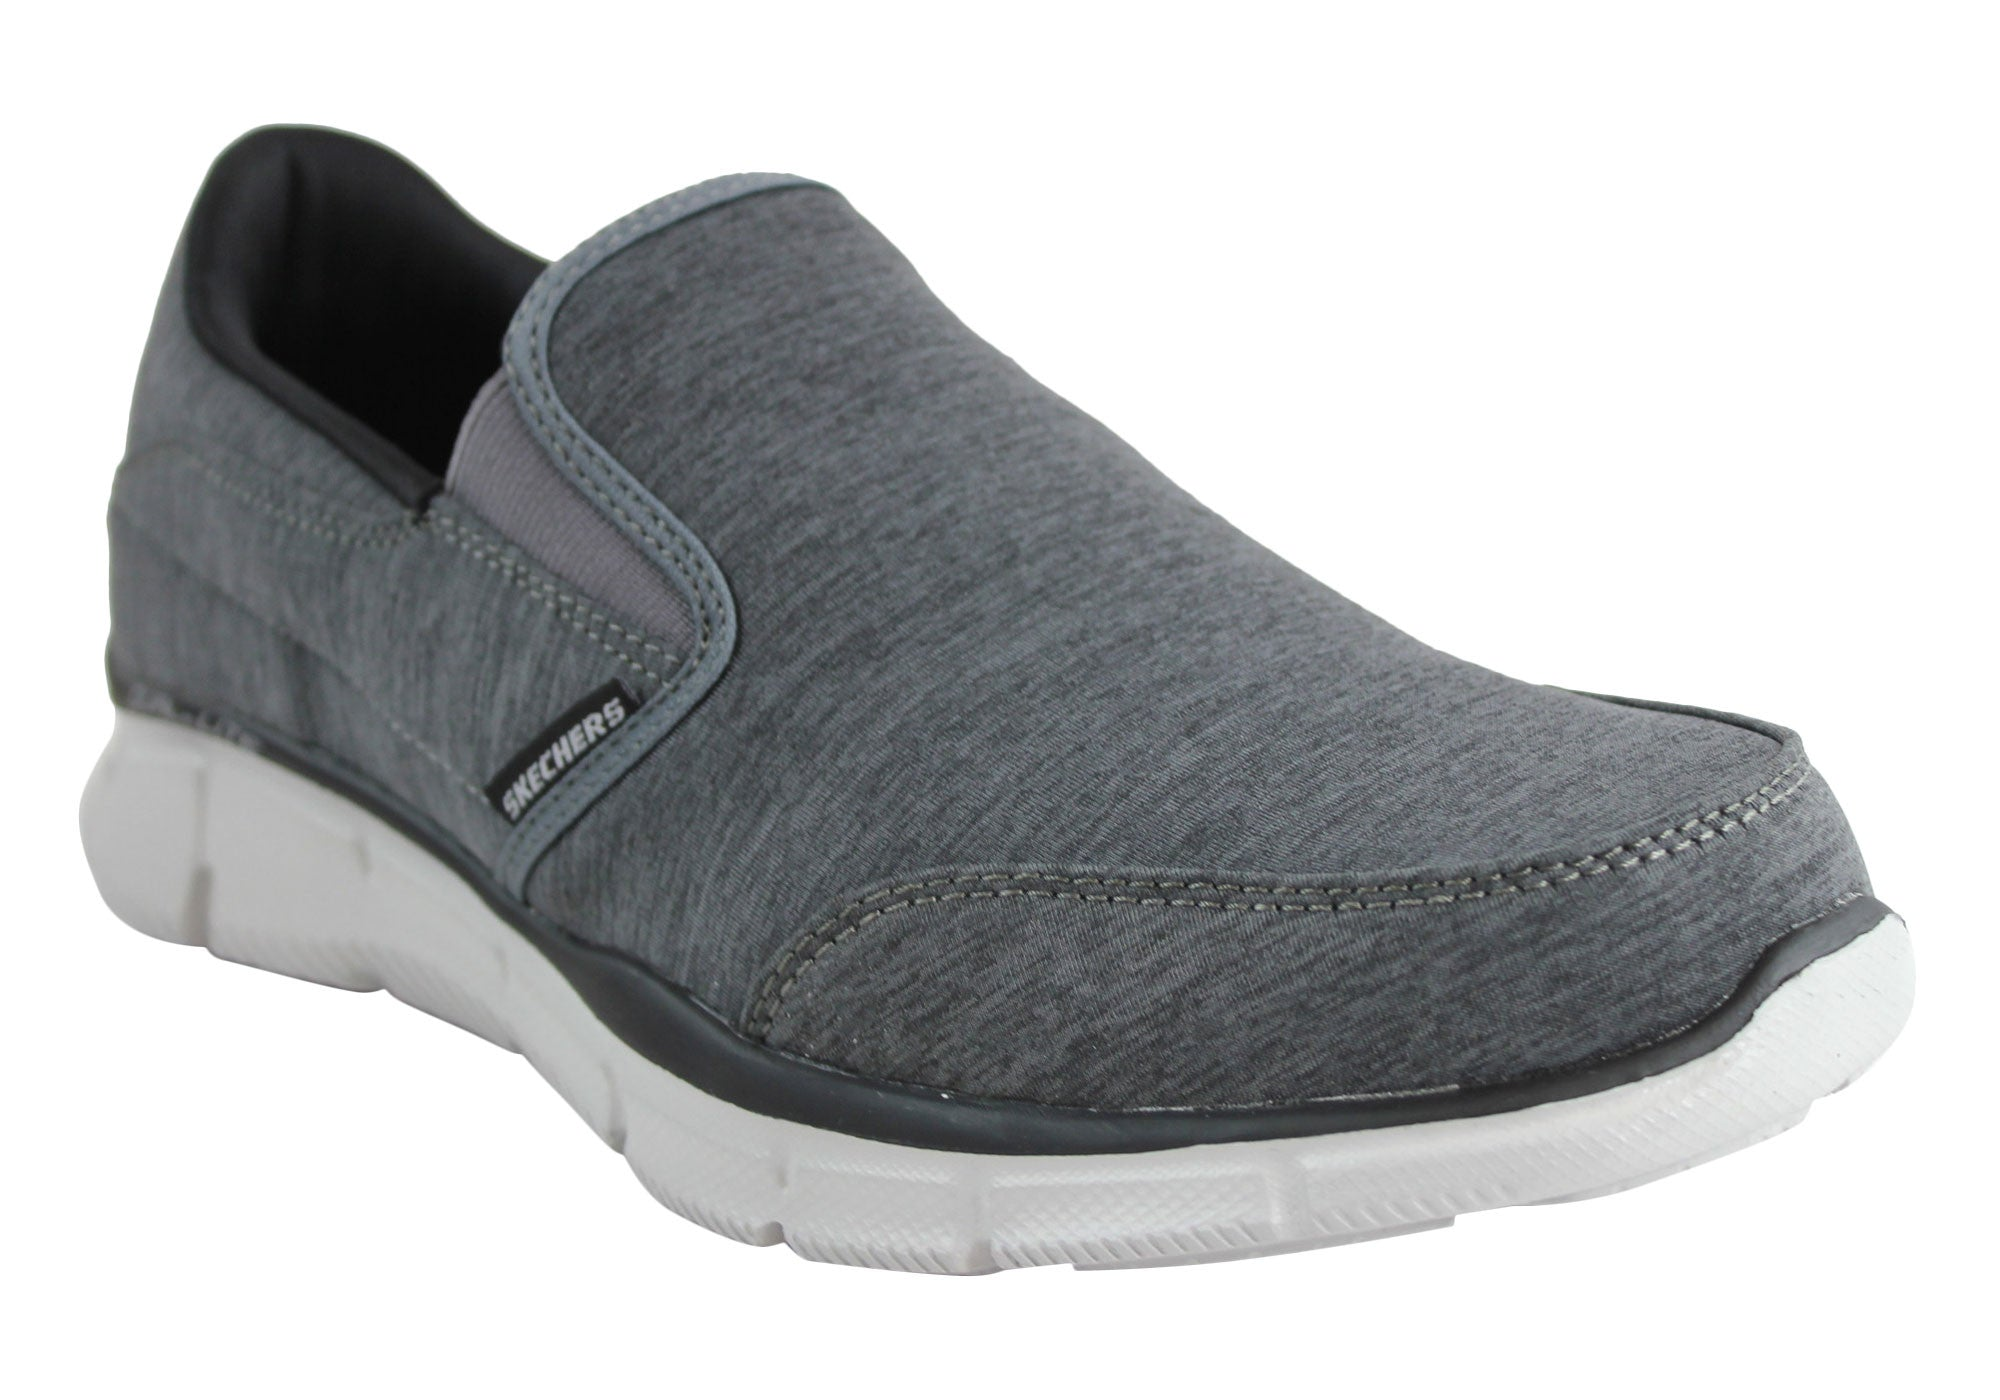 Skechers Equalizer Forward Thinking Mens Slipon Casual Shoes